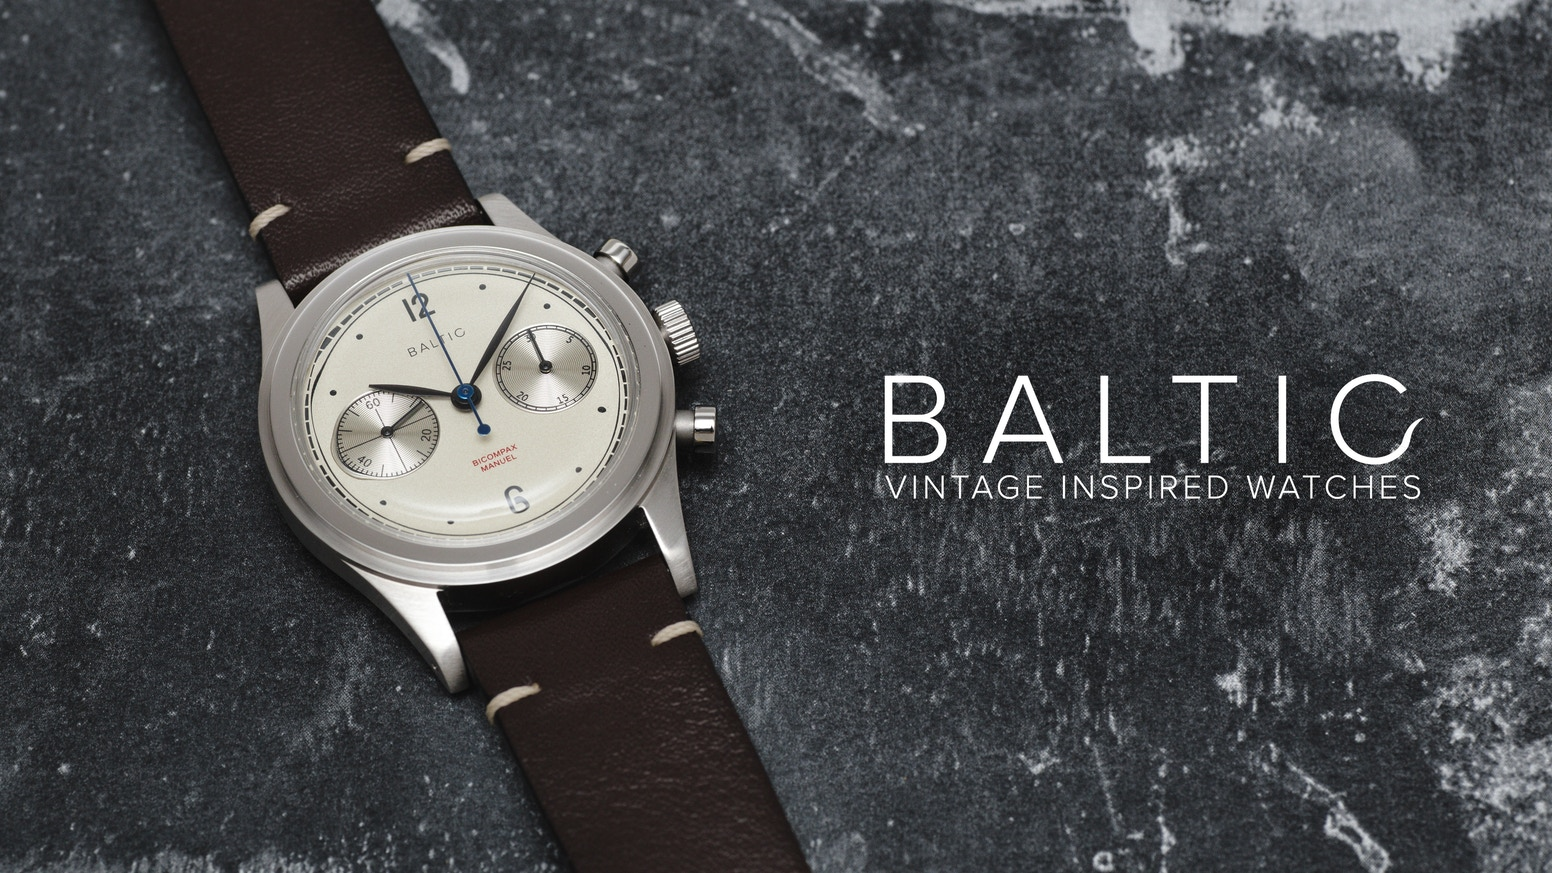 BALTIC is a vintage inspired mechanical watch assembled in France.